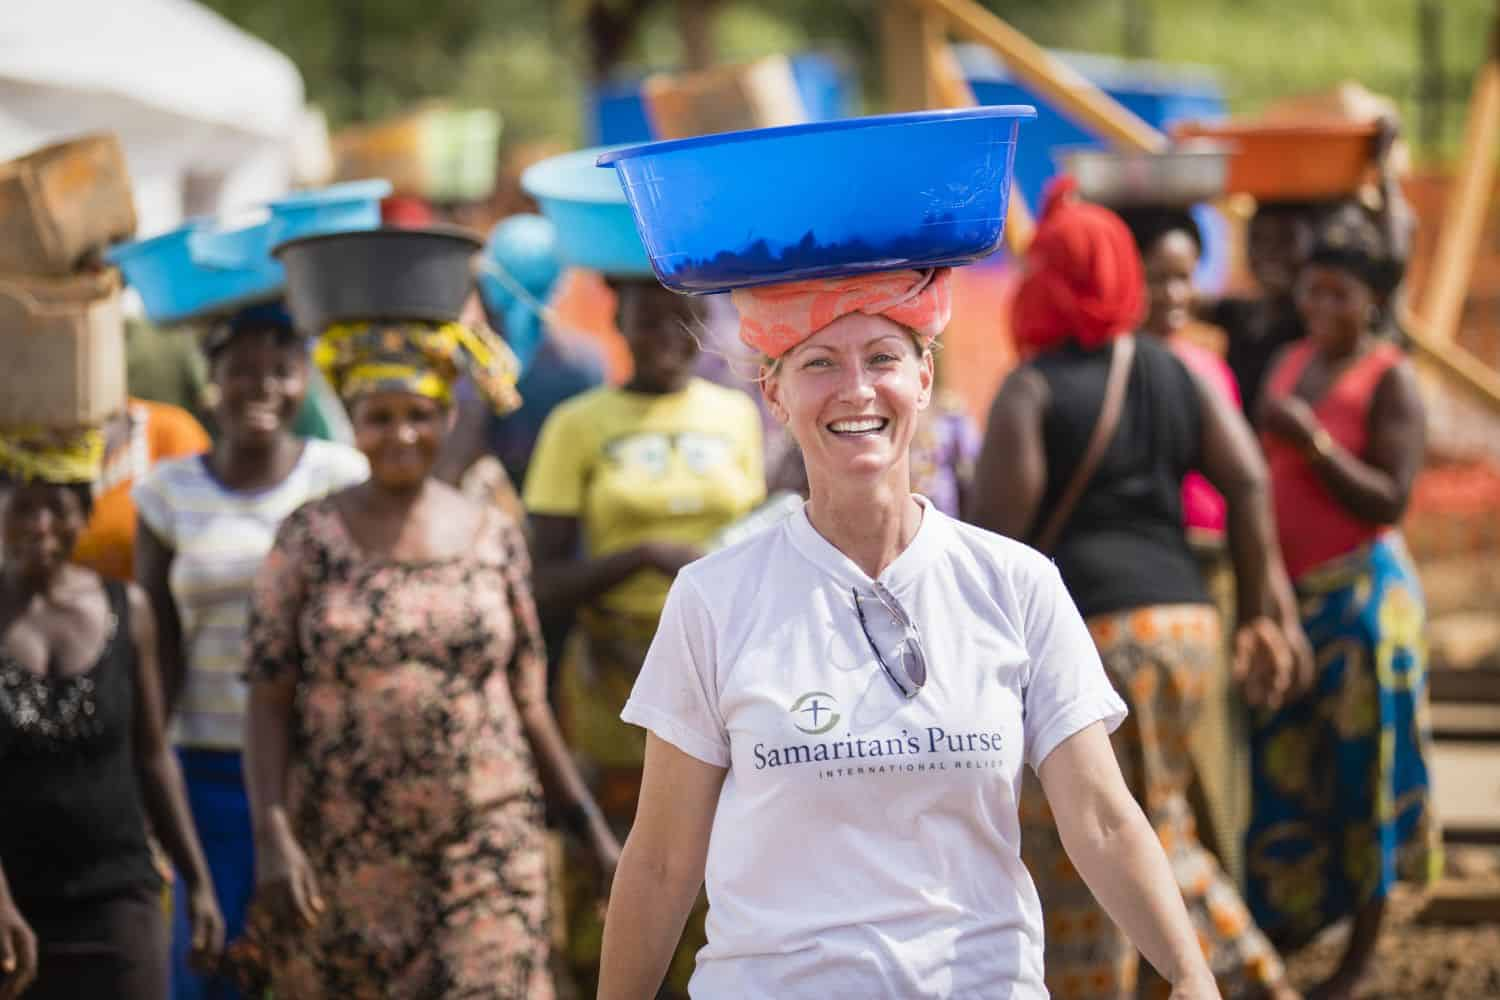 DART member Shelly Kelly has served with Samaritan's Purse on a number of international deployments.